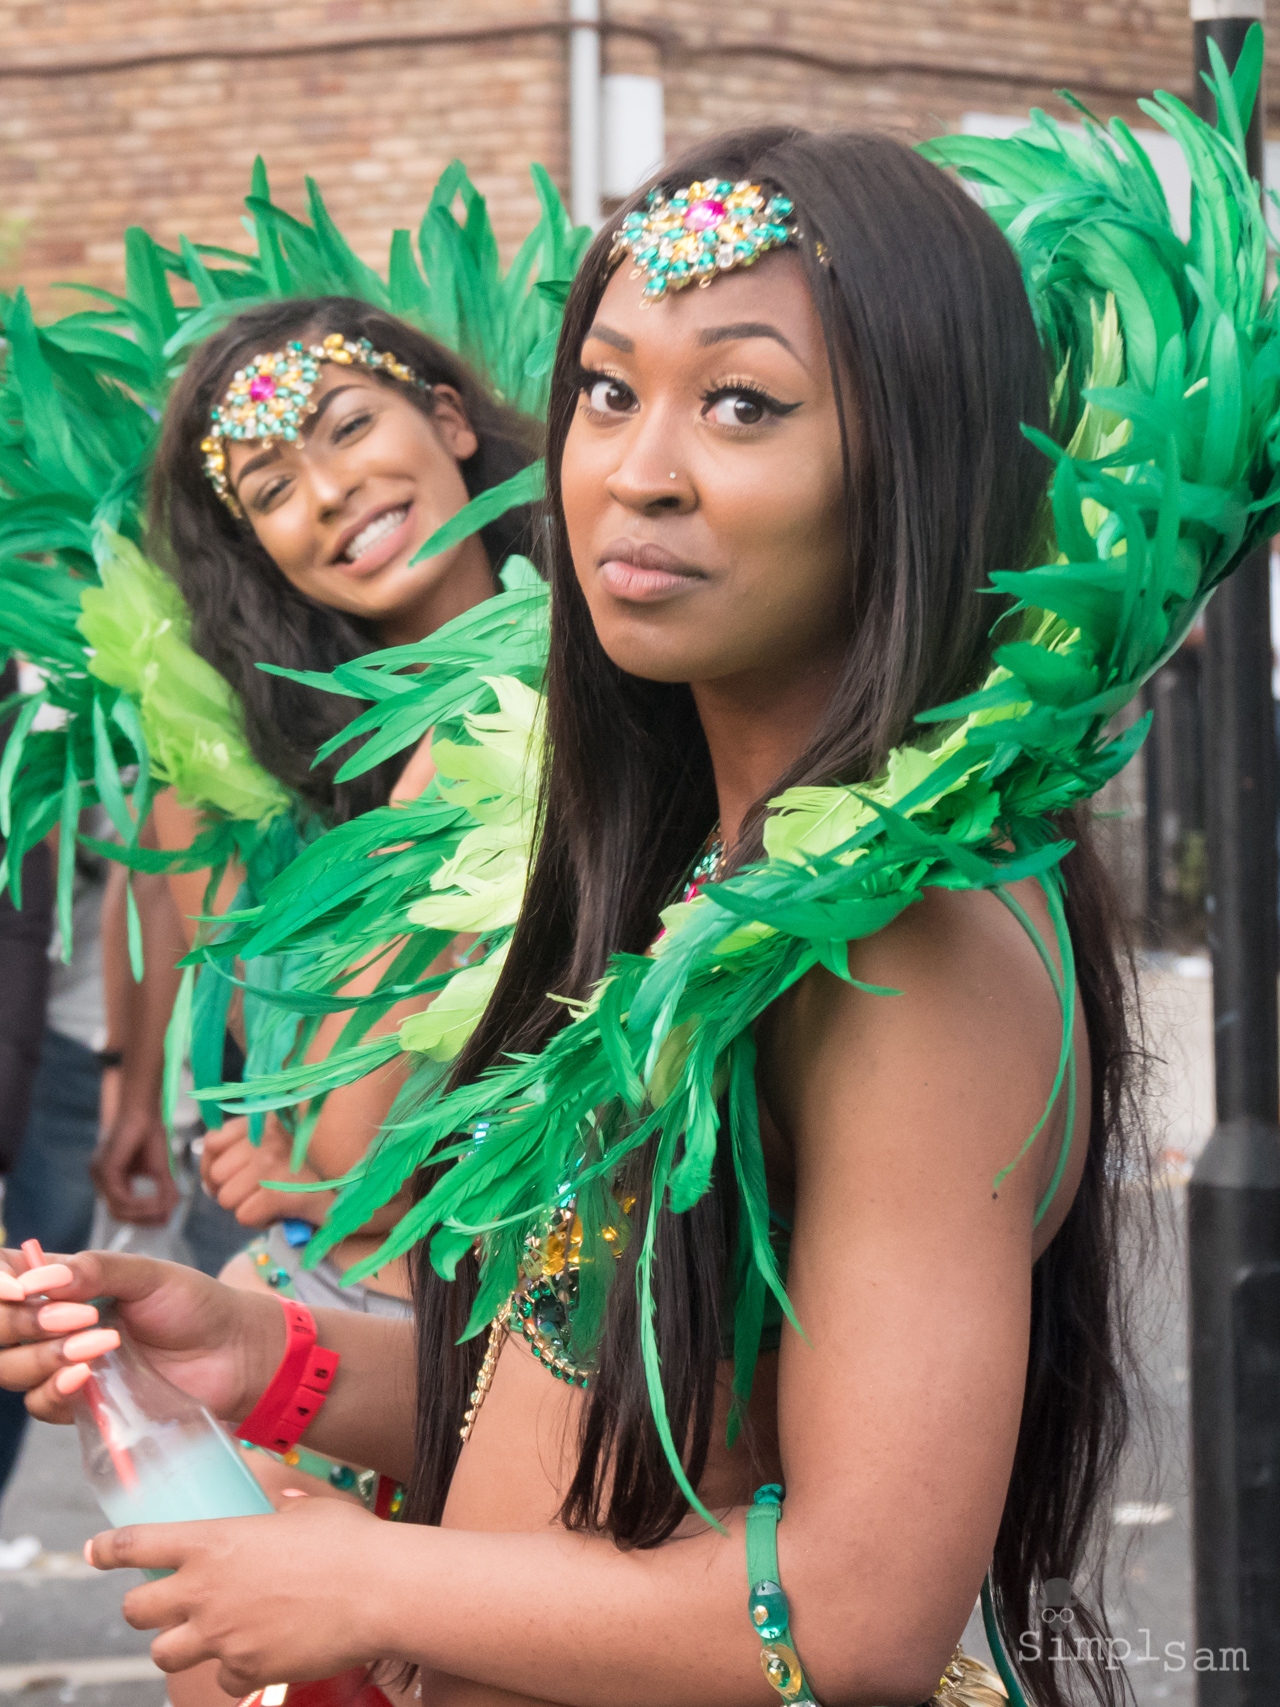 Notting Hill Carnival 2017 - Green Hearts